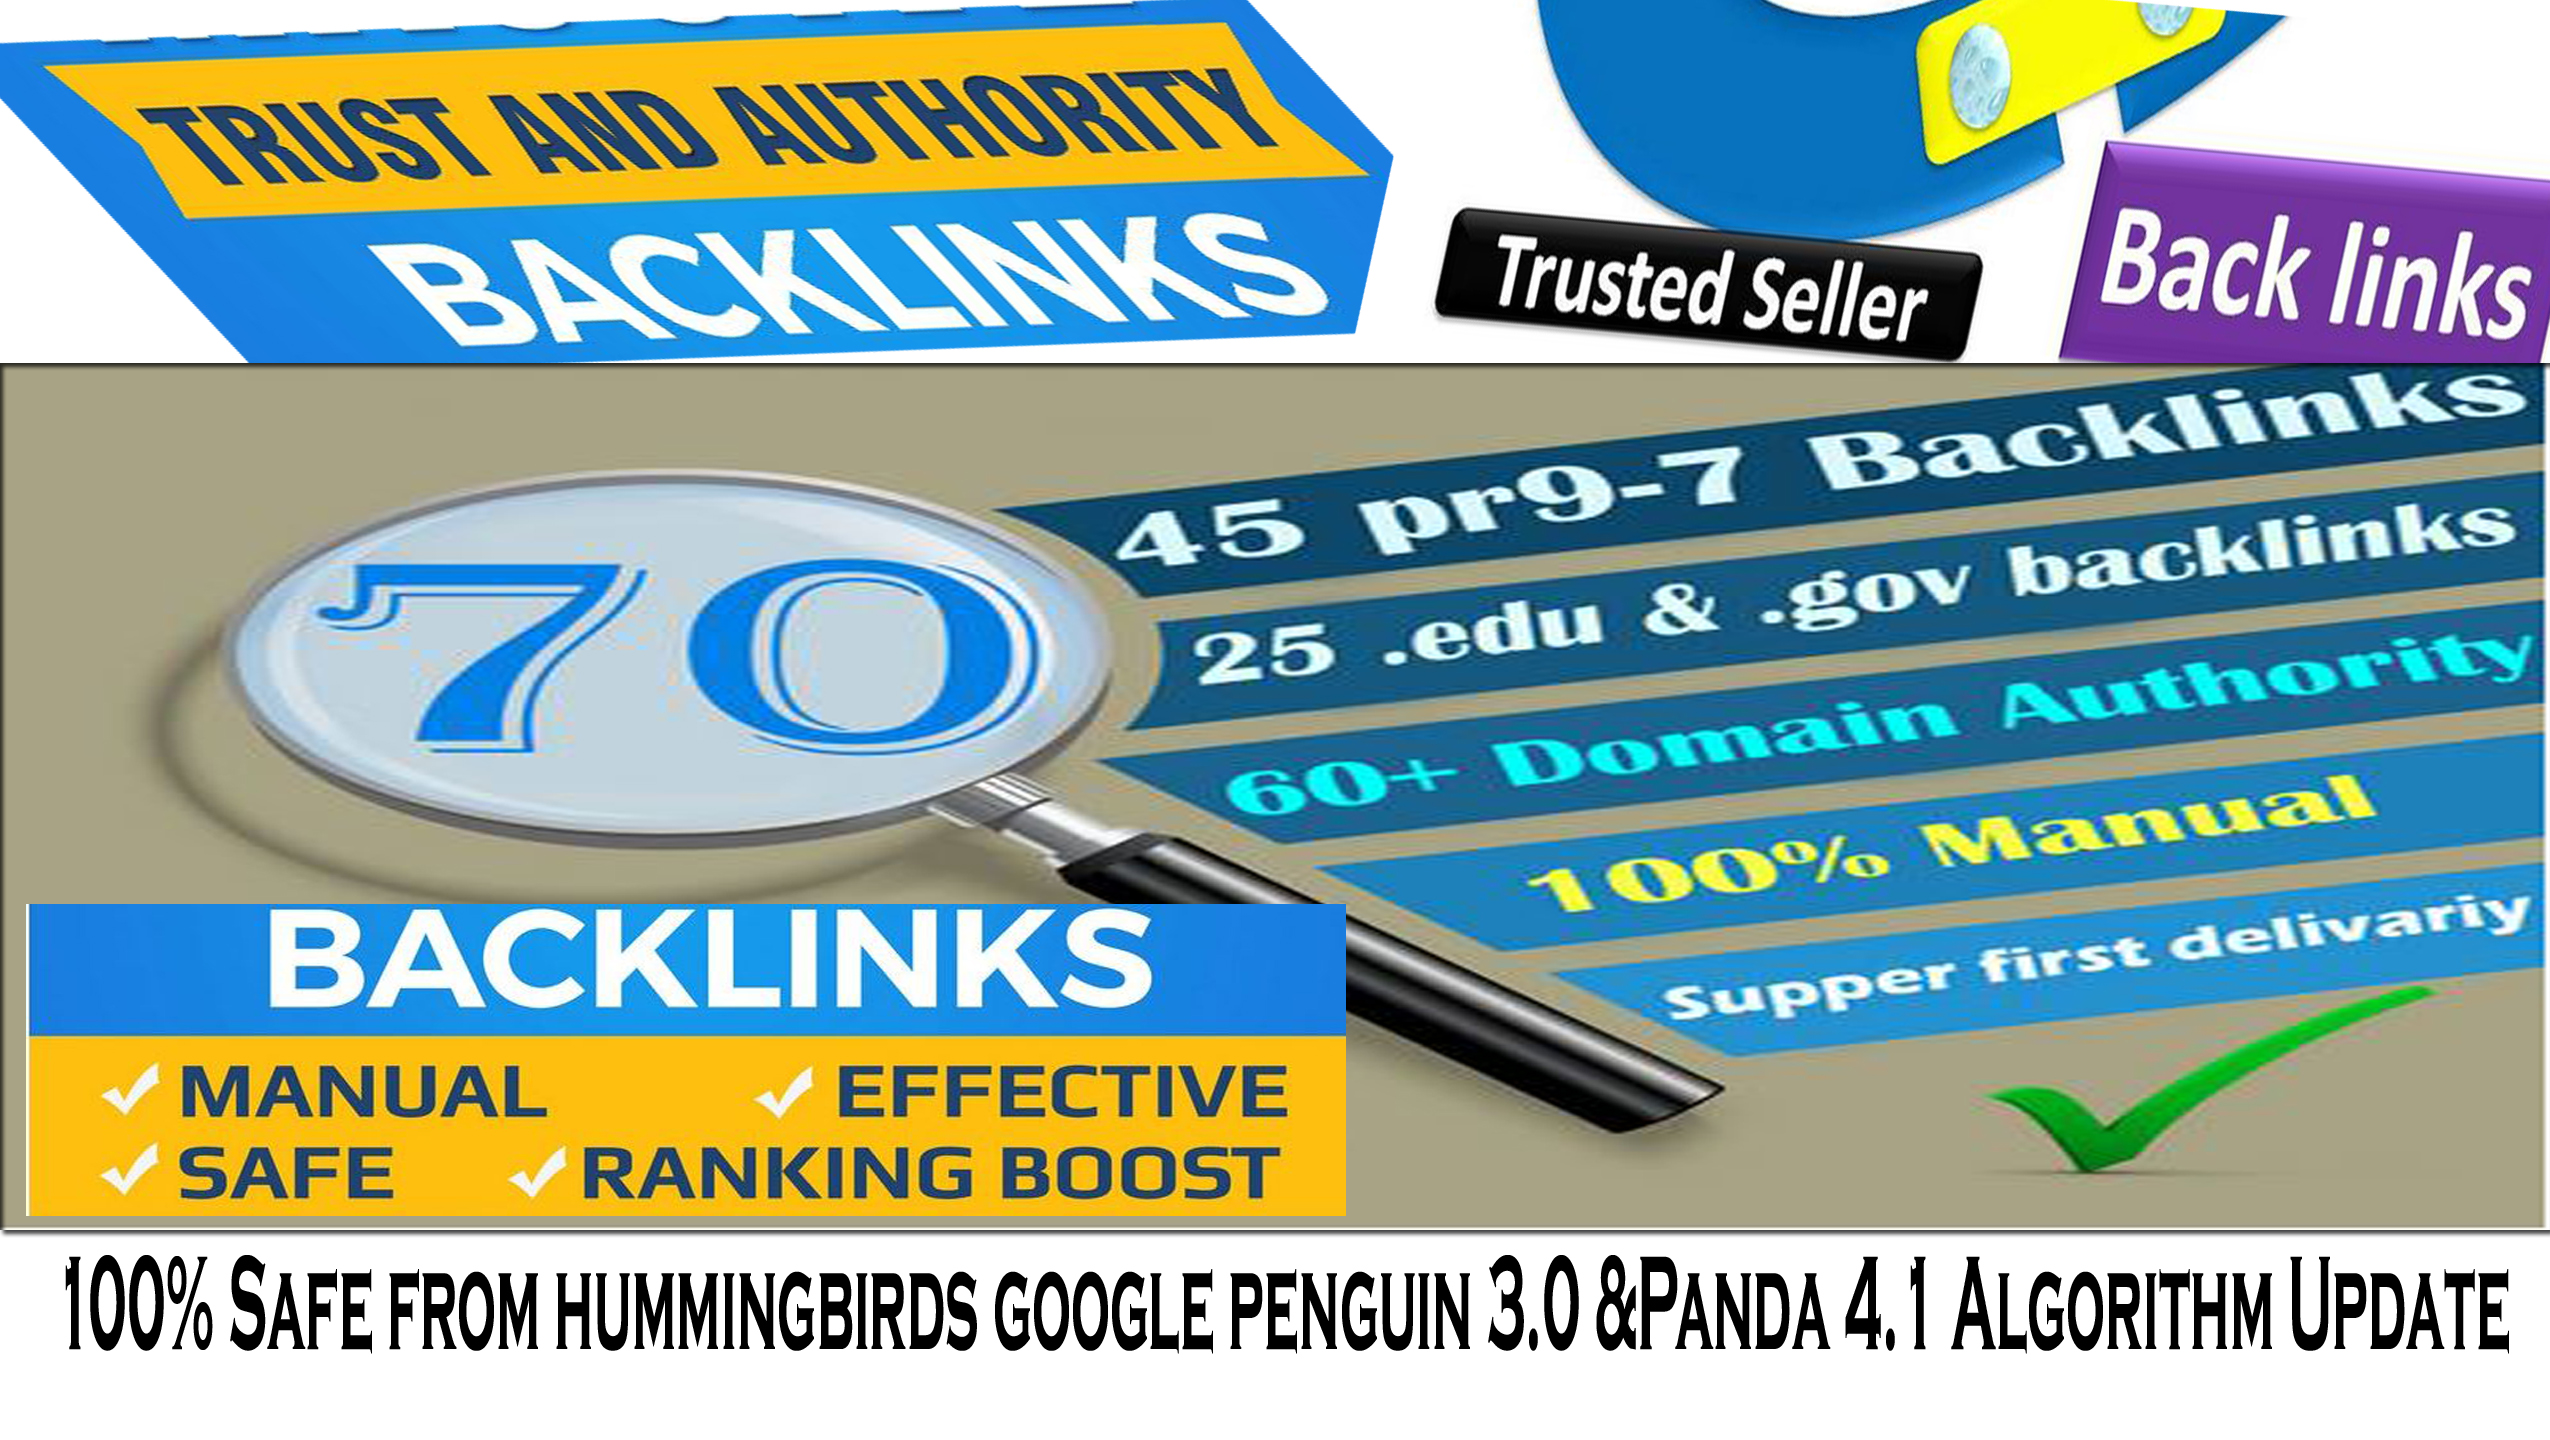 Get Increase your Google ranking with 70 Backlinks 50 PR9 + 20 EDU/GOV 80+DA manually with fast deli